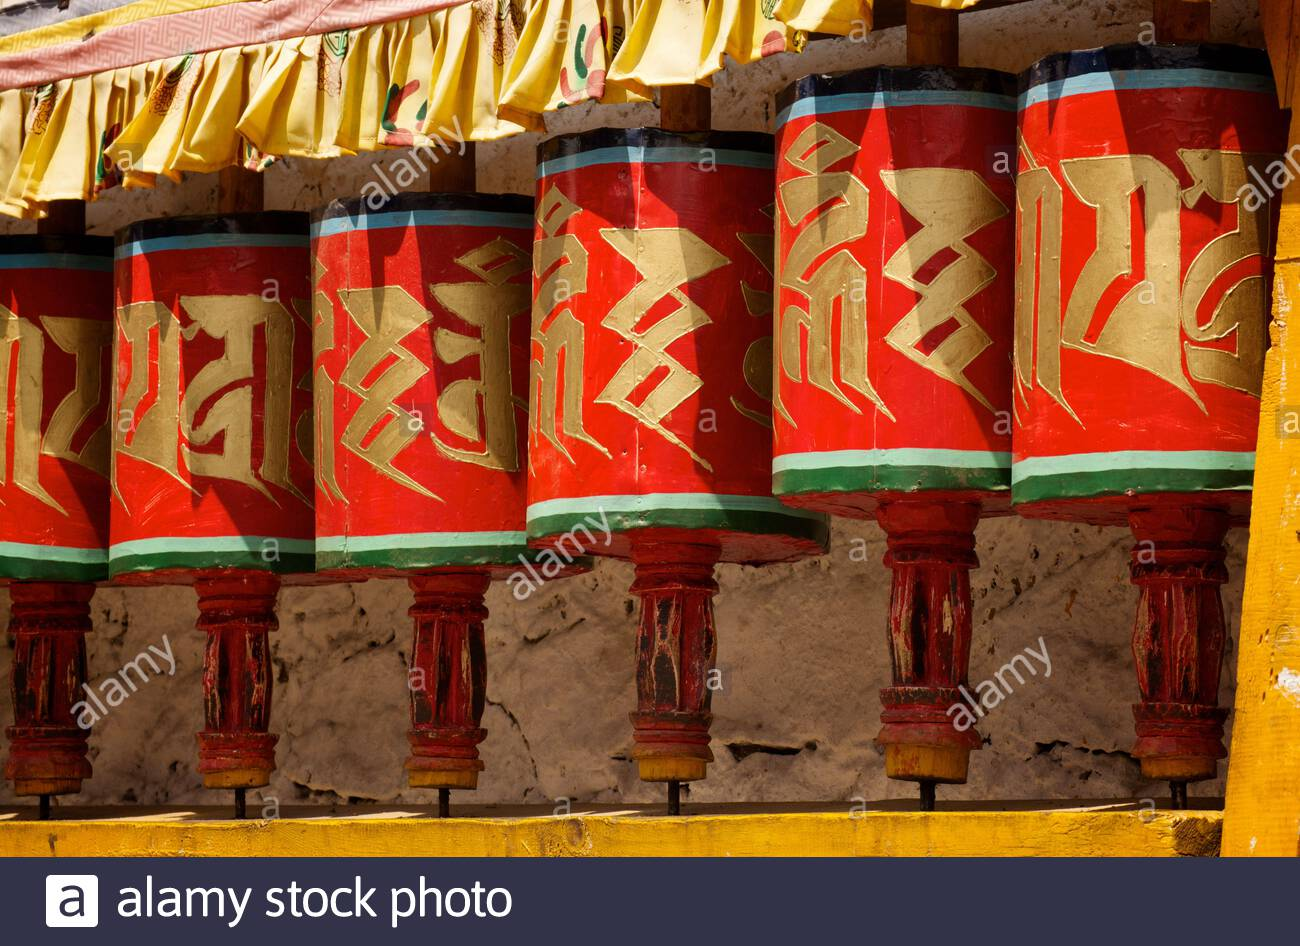 prayer-wheels-at-kyichu-lhakhang-an-important-buddhist-temple-built-in-the-7th-century-by-tibetan-emporer-songtsen-gampo-in-paro-bhutan-2C66J18.jpg